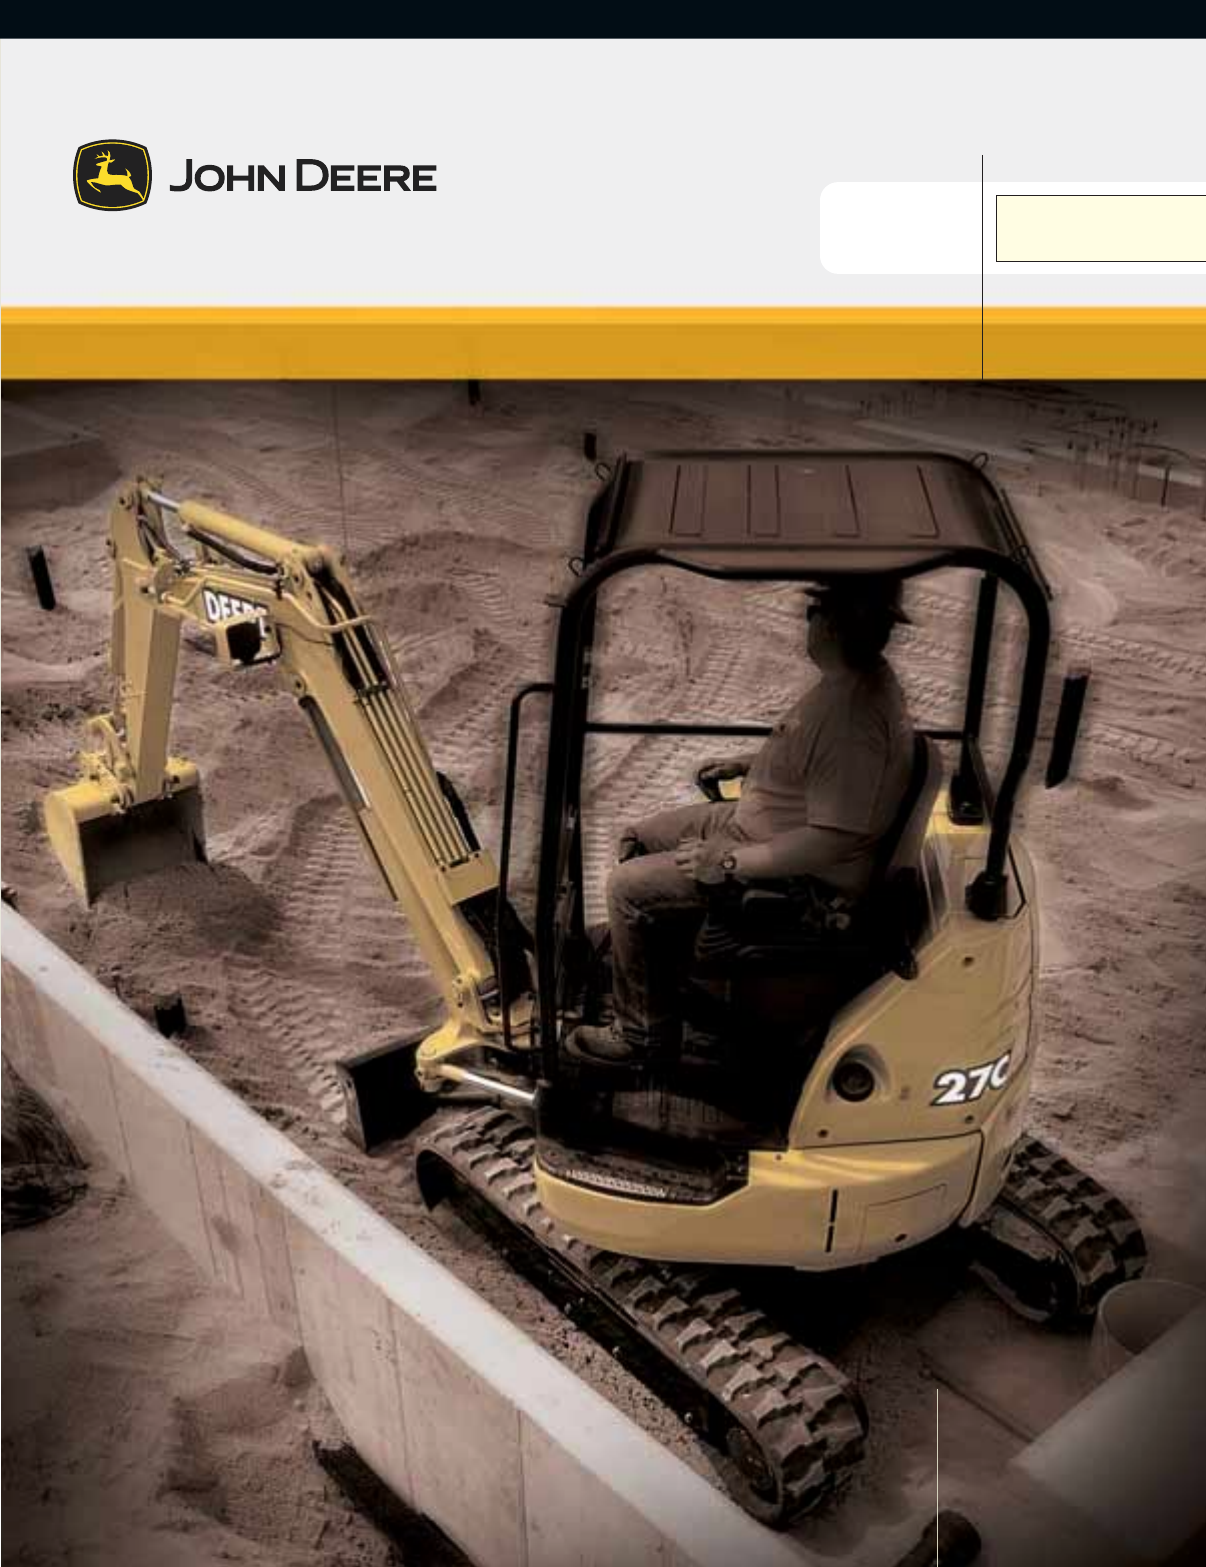 john deere products services compact excavator 35c zts user guide rh laundry manualsonline com John Deere Lawn Mower Parts John Deere L120 Manual